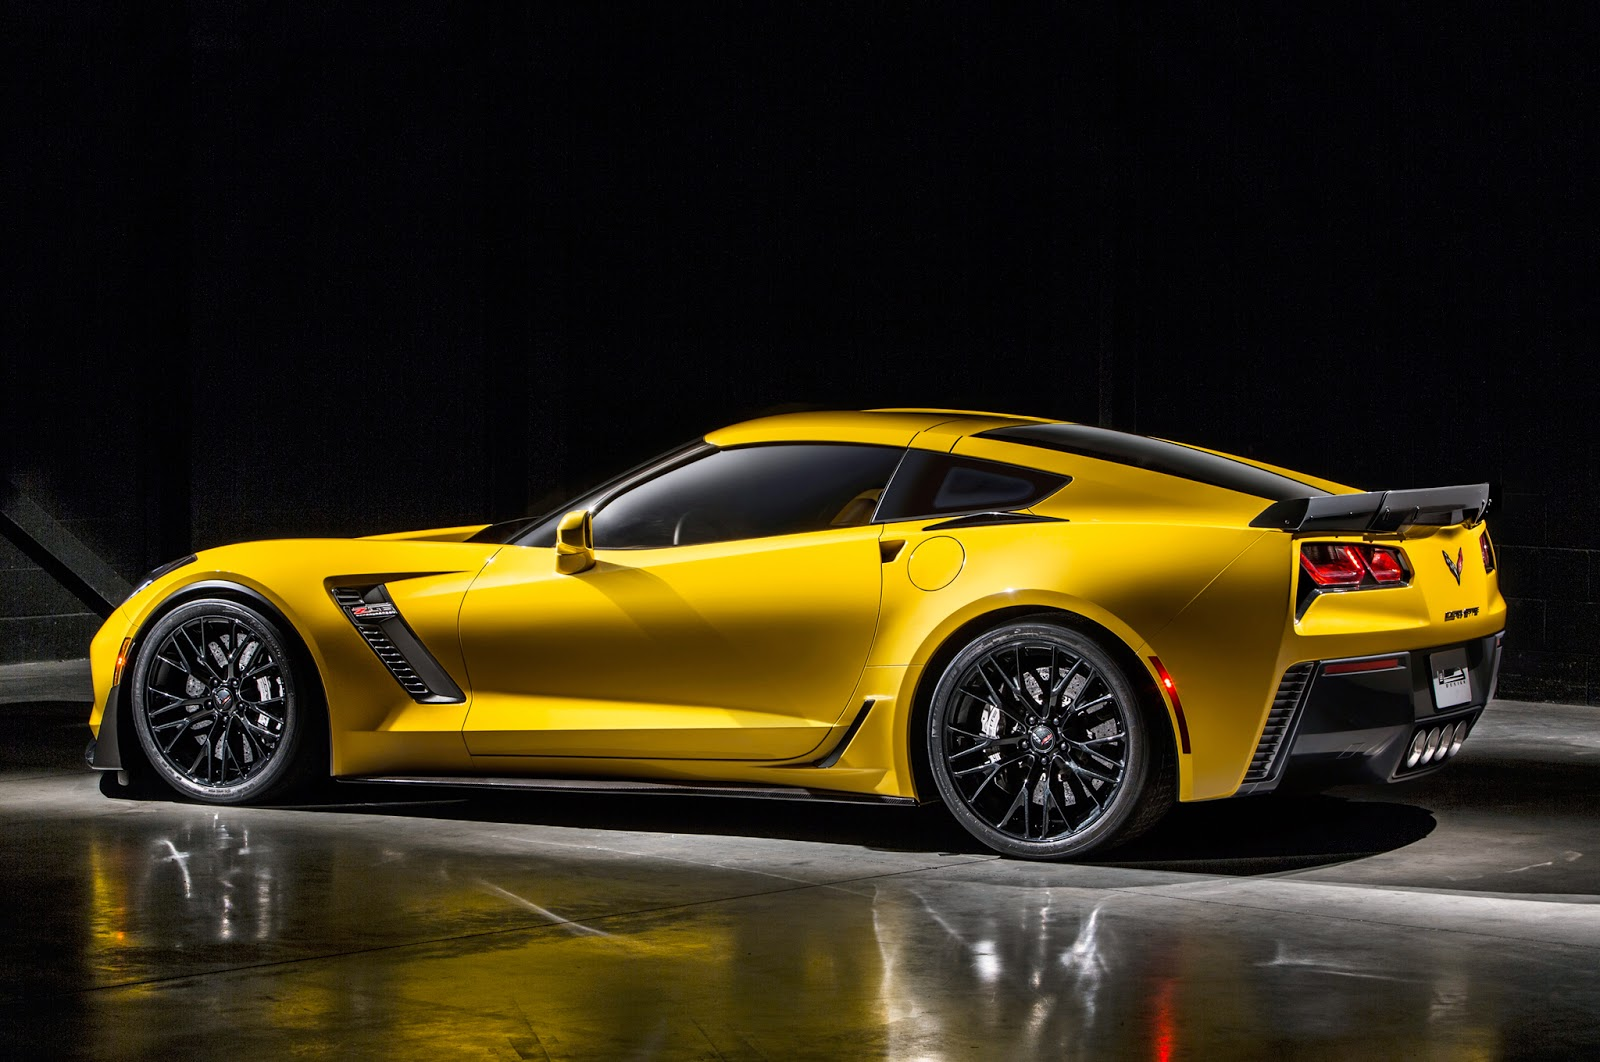 Corvette to get 30 MPG with 8-Speed Transmission?